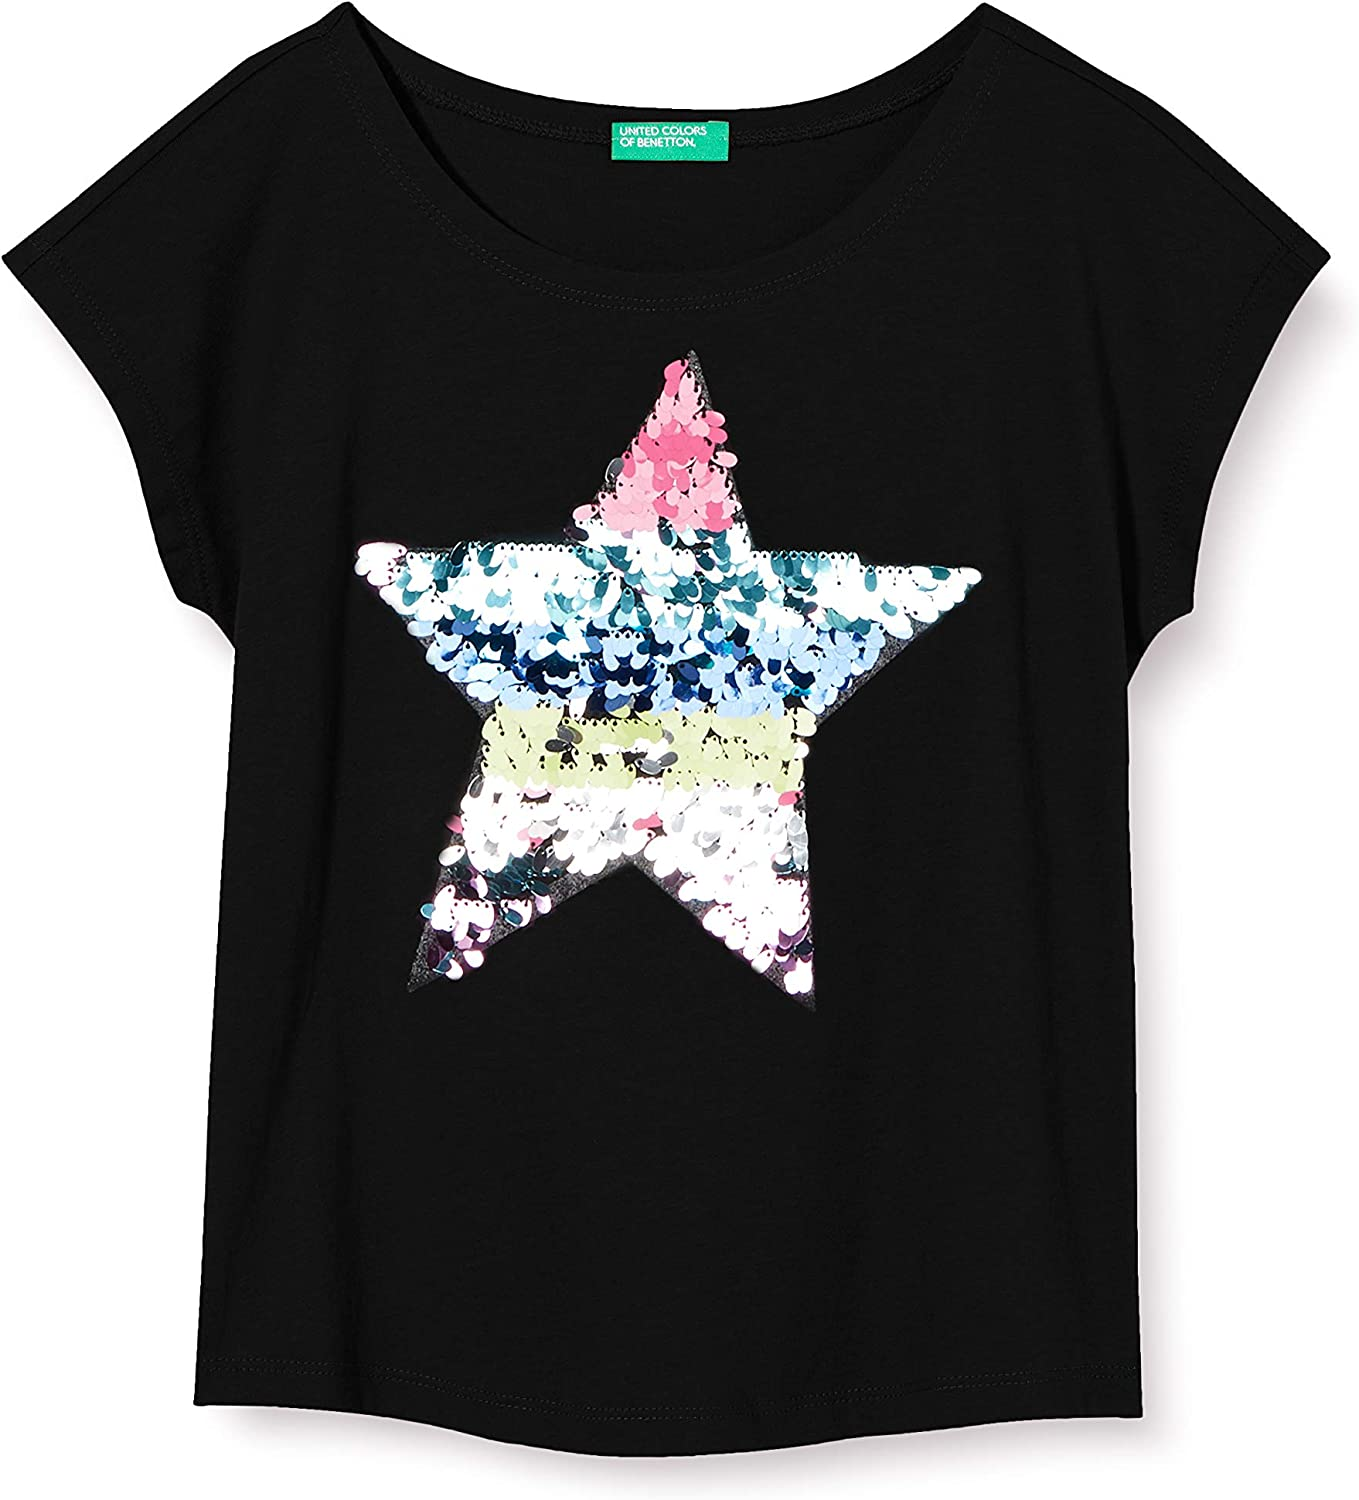 United Colors of Benetton Maglietta Bambina